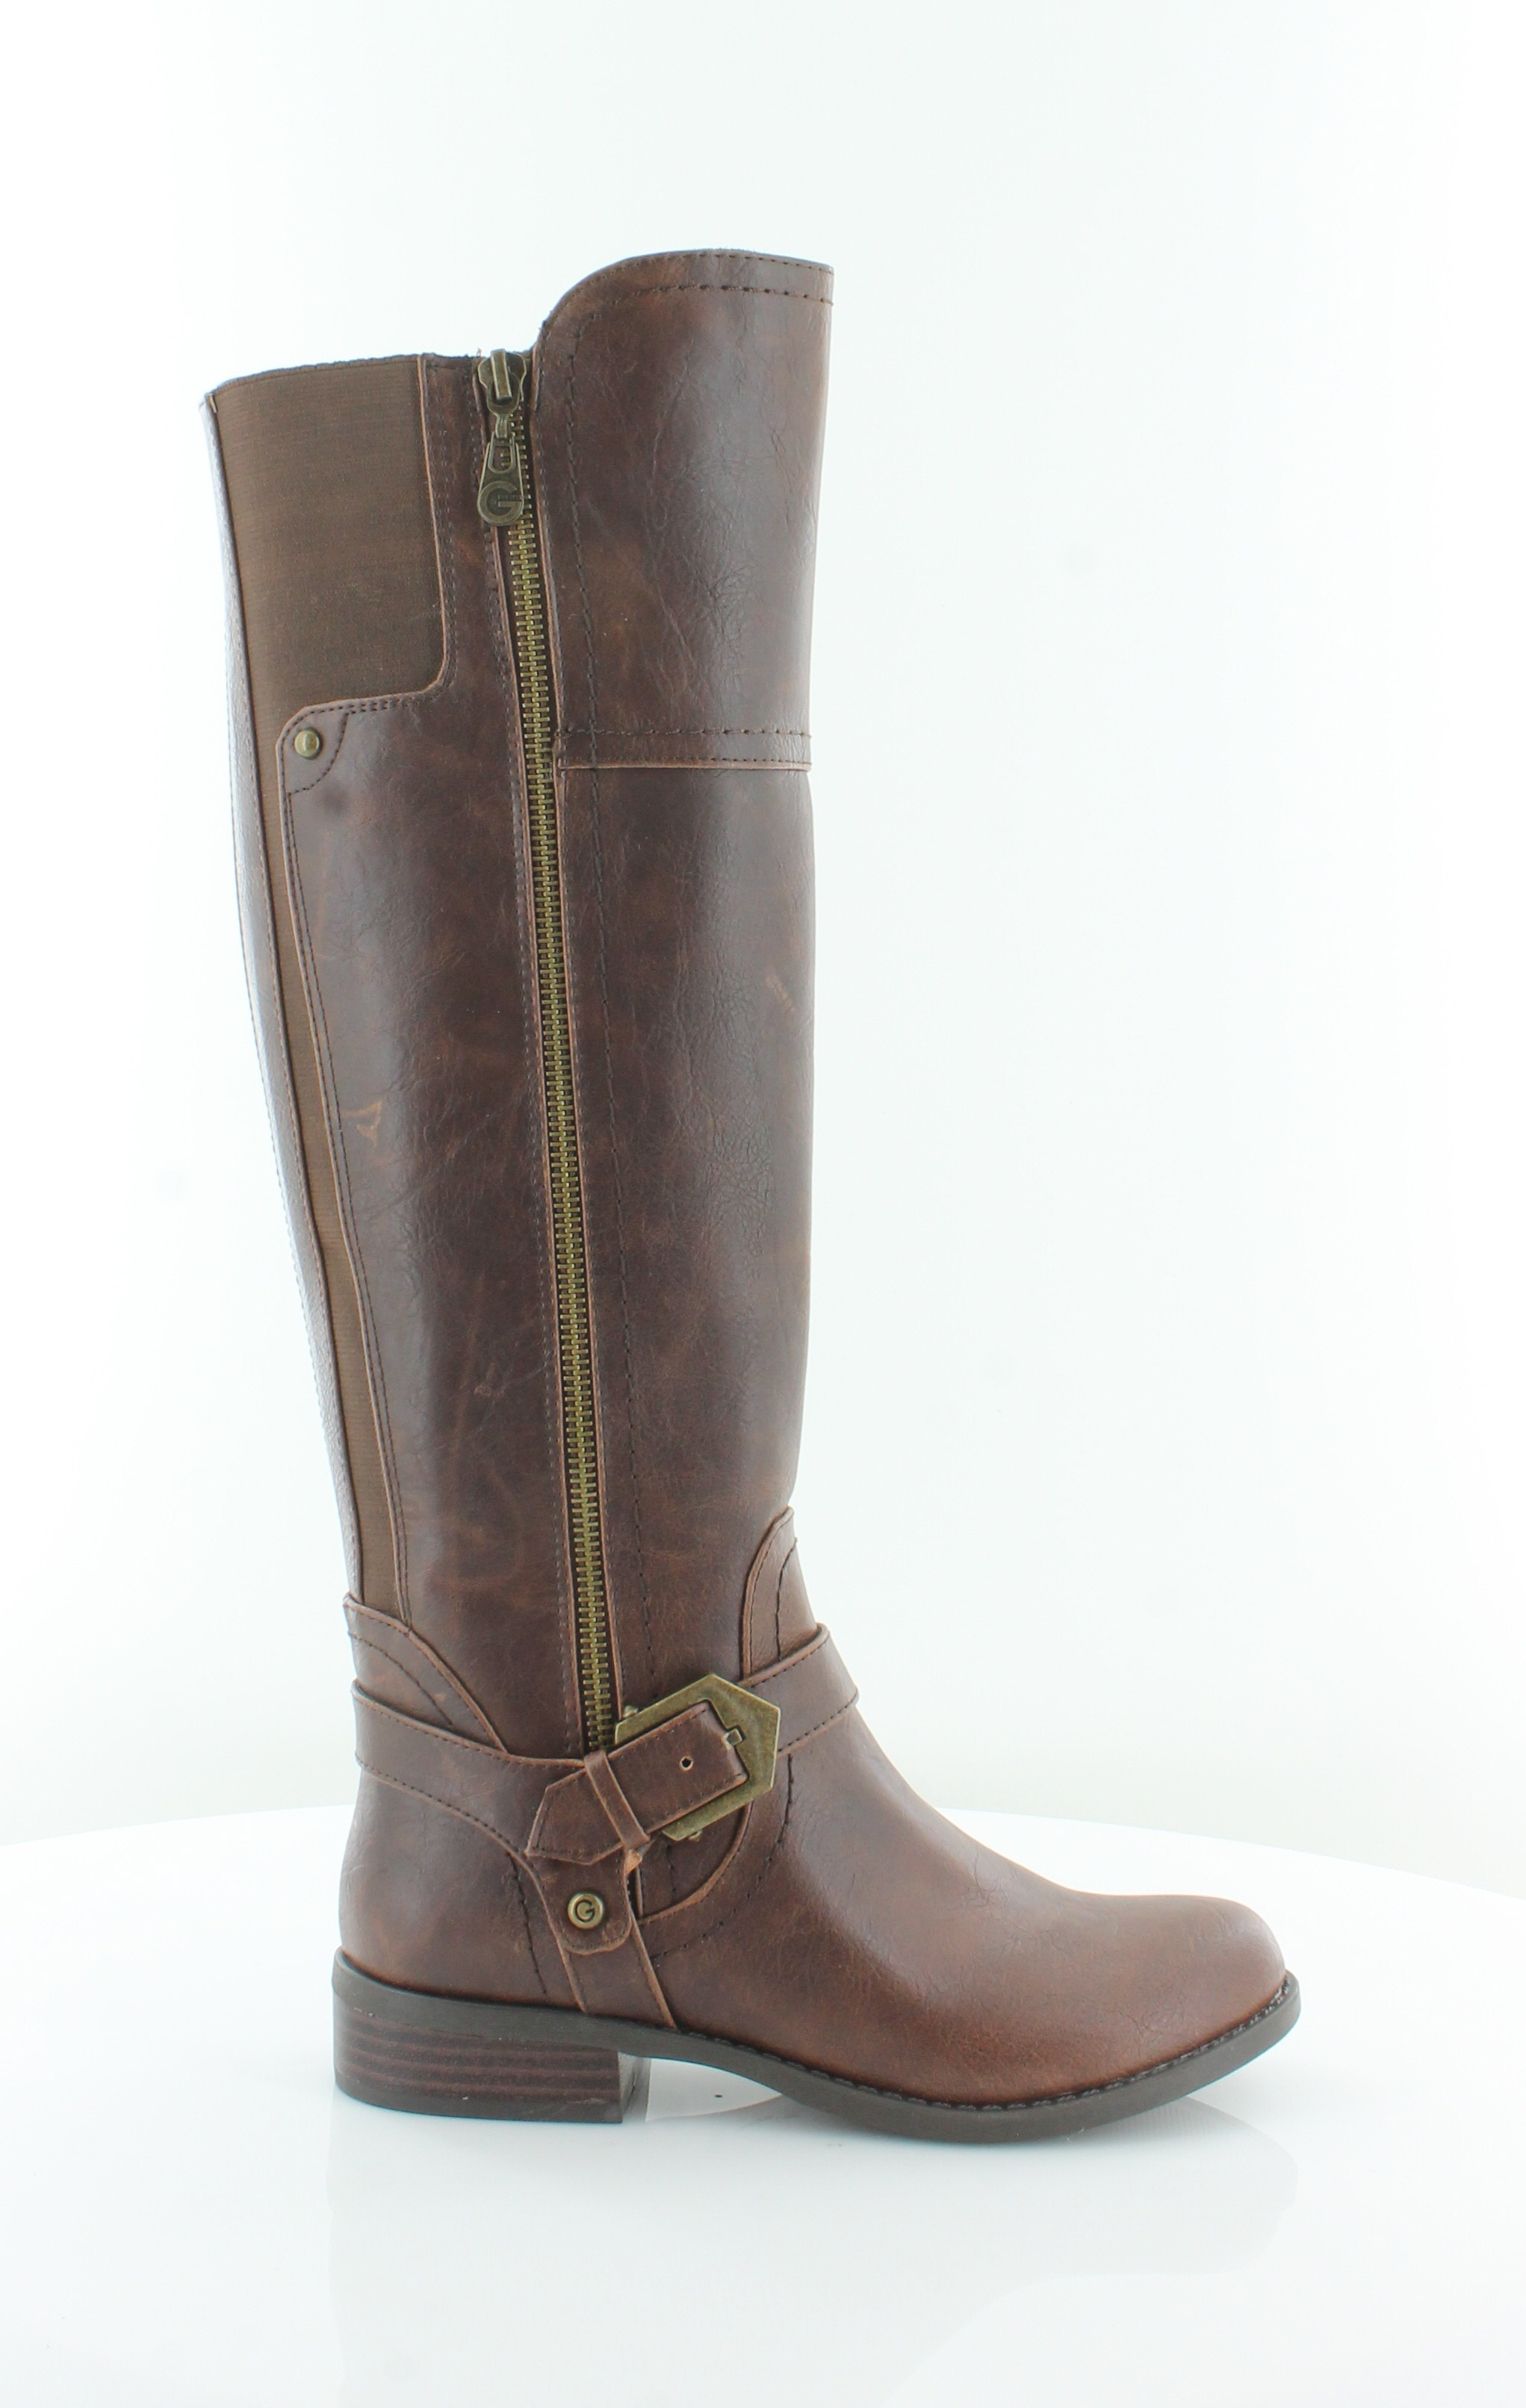 9dd8a0c10fe G by Guess Hailee Brown Womens Shoes Size 5 M Boots MSRP $89 ...